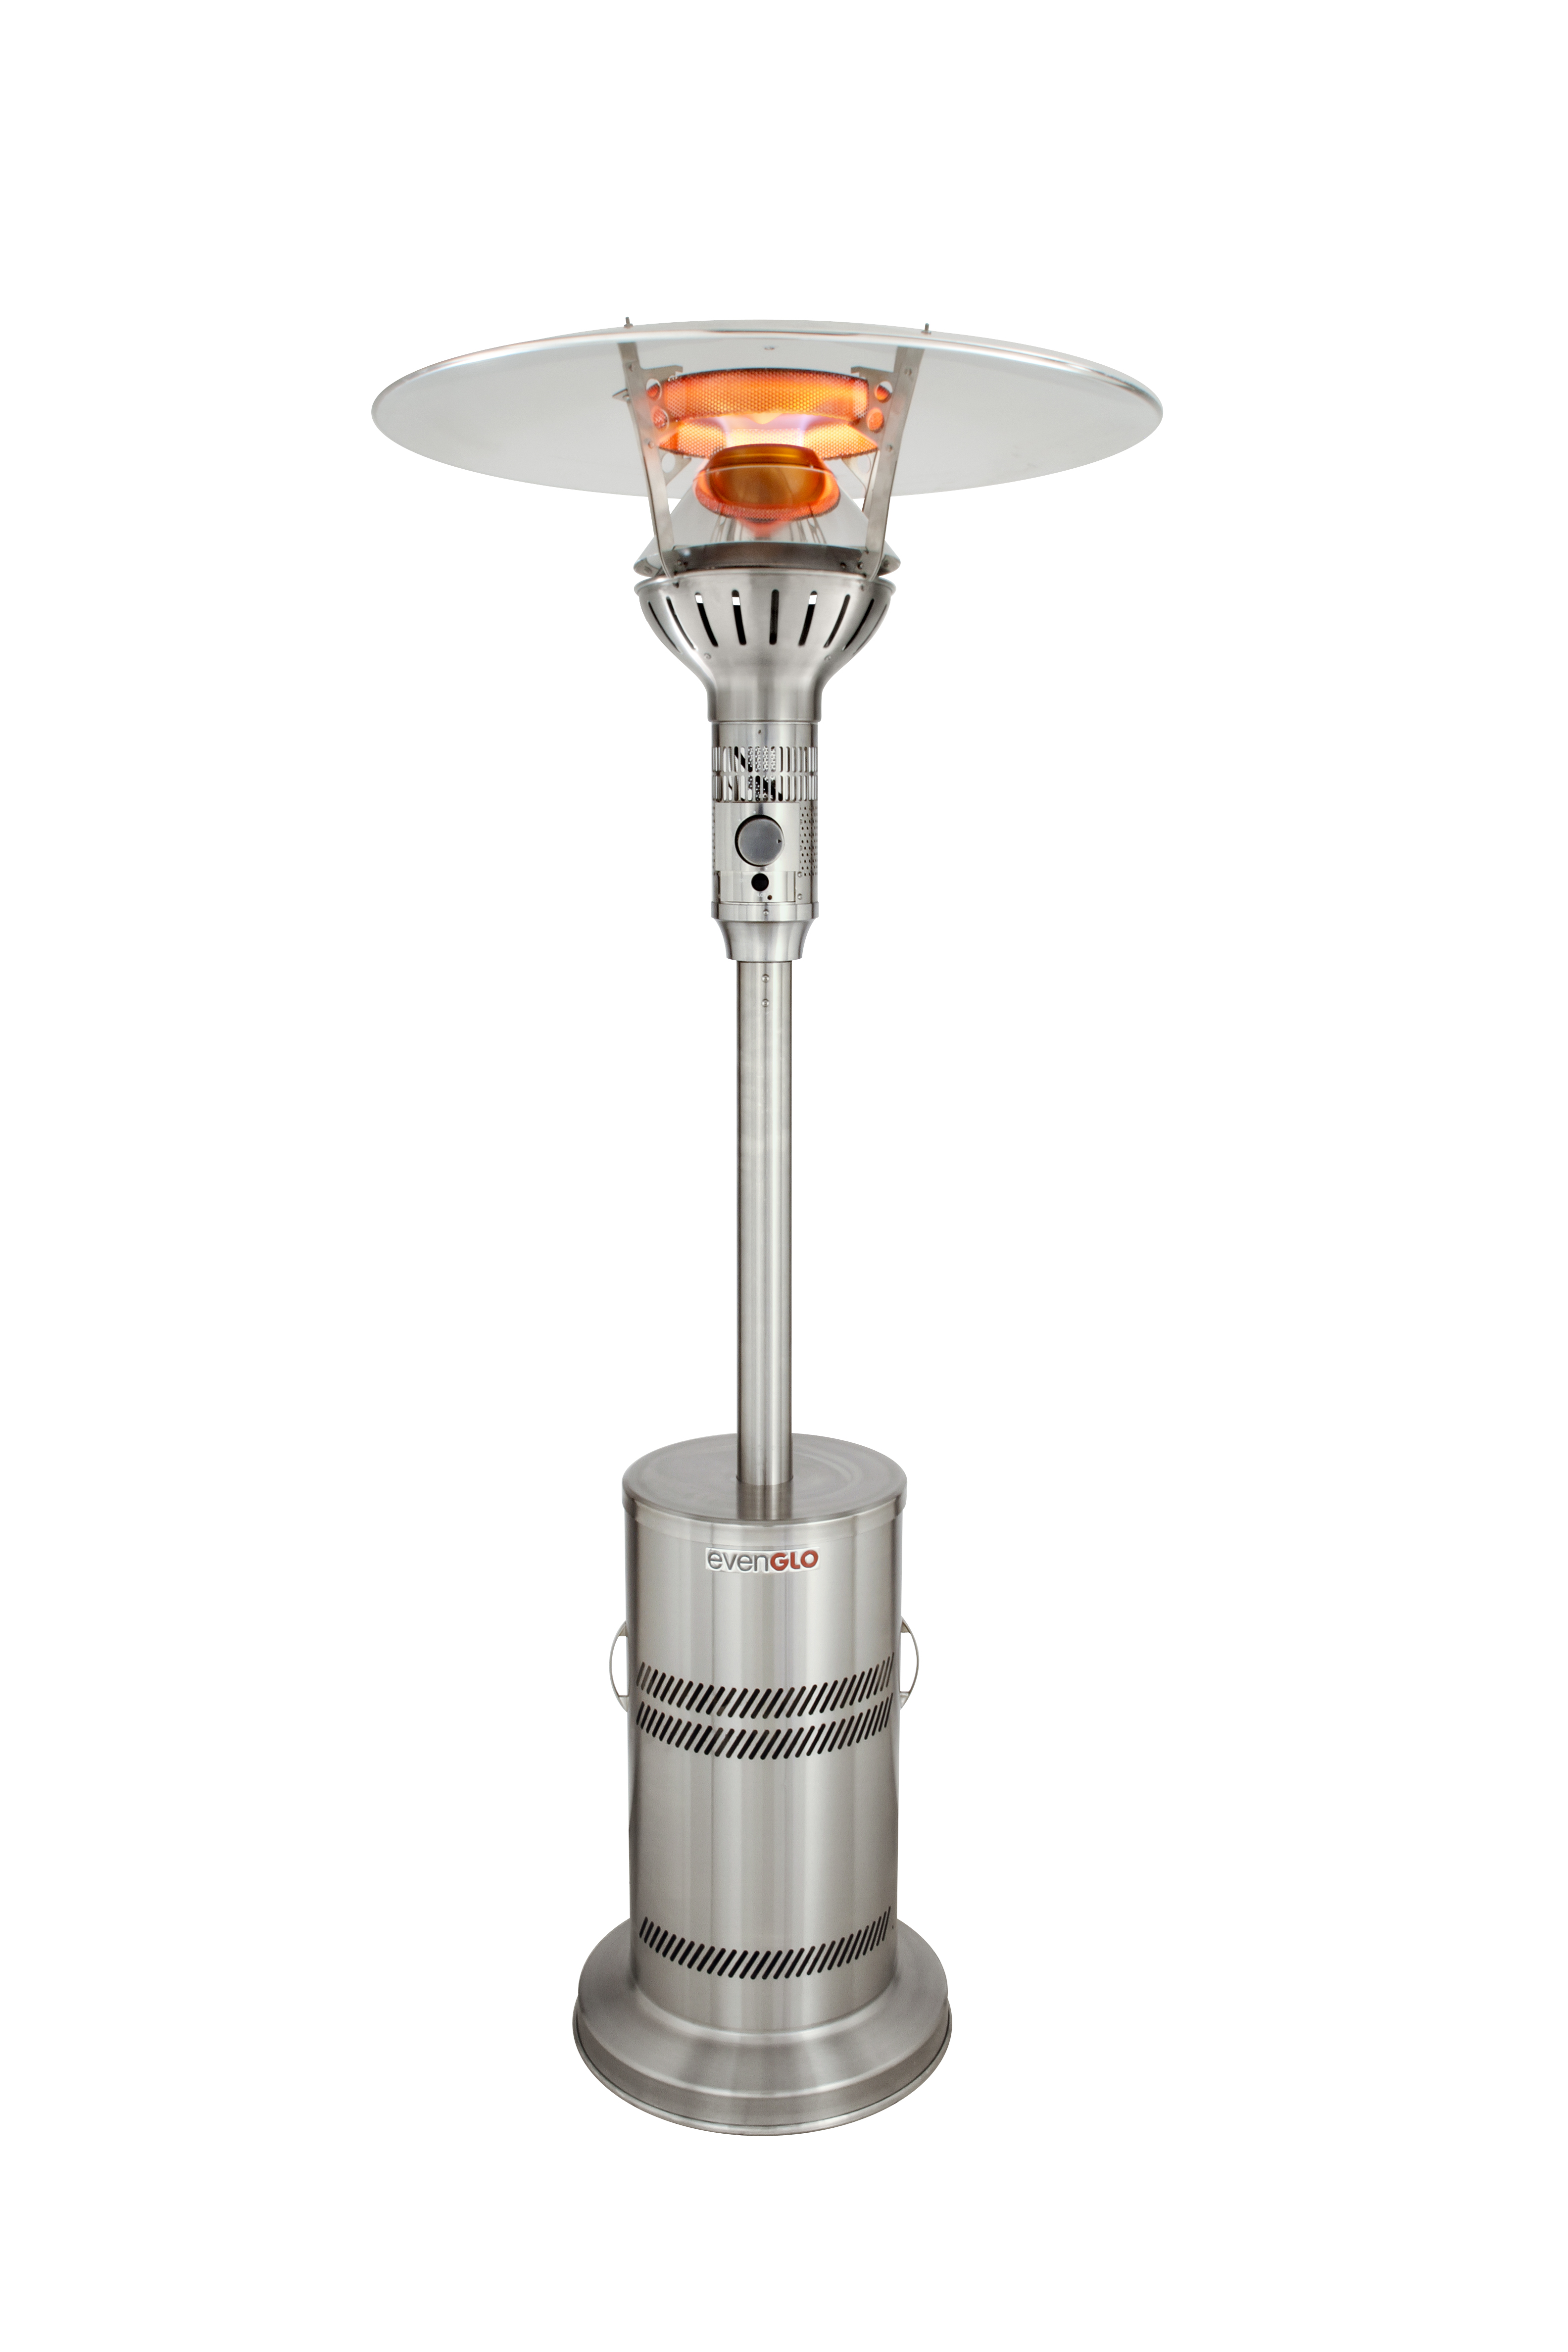 Even Glo Outdoor Patio Heater, Stainless Steel